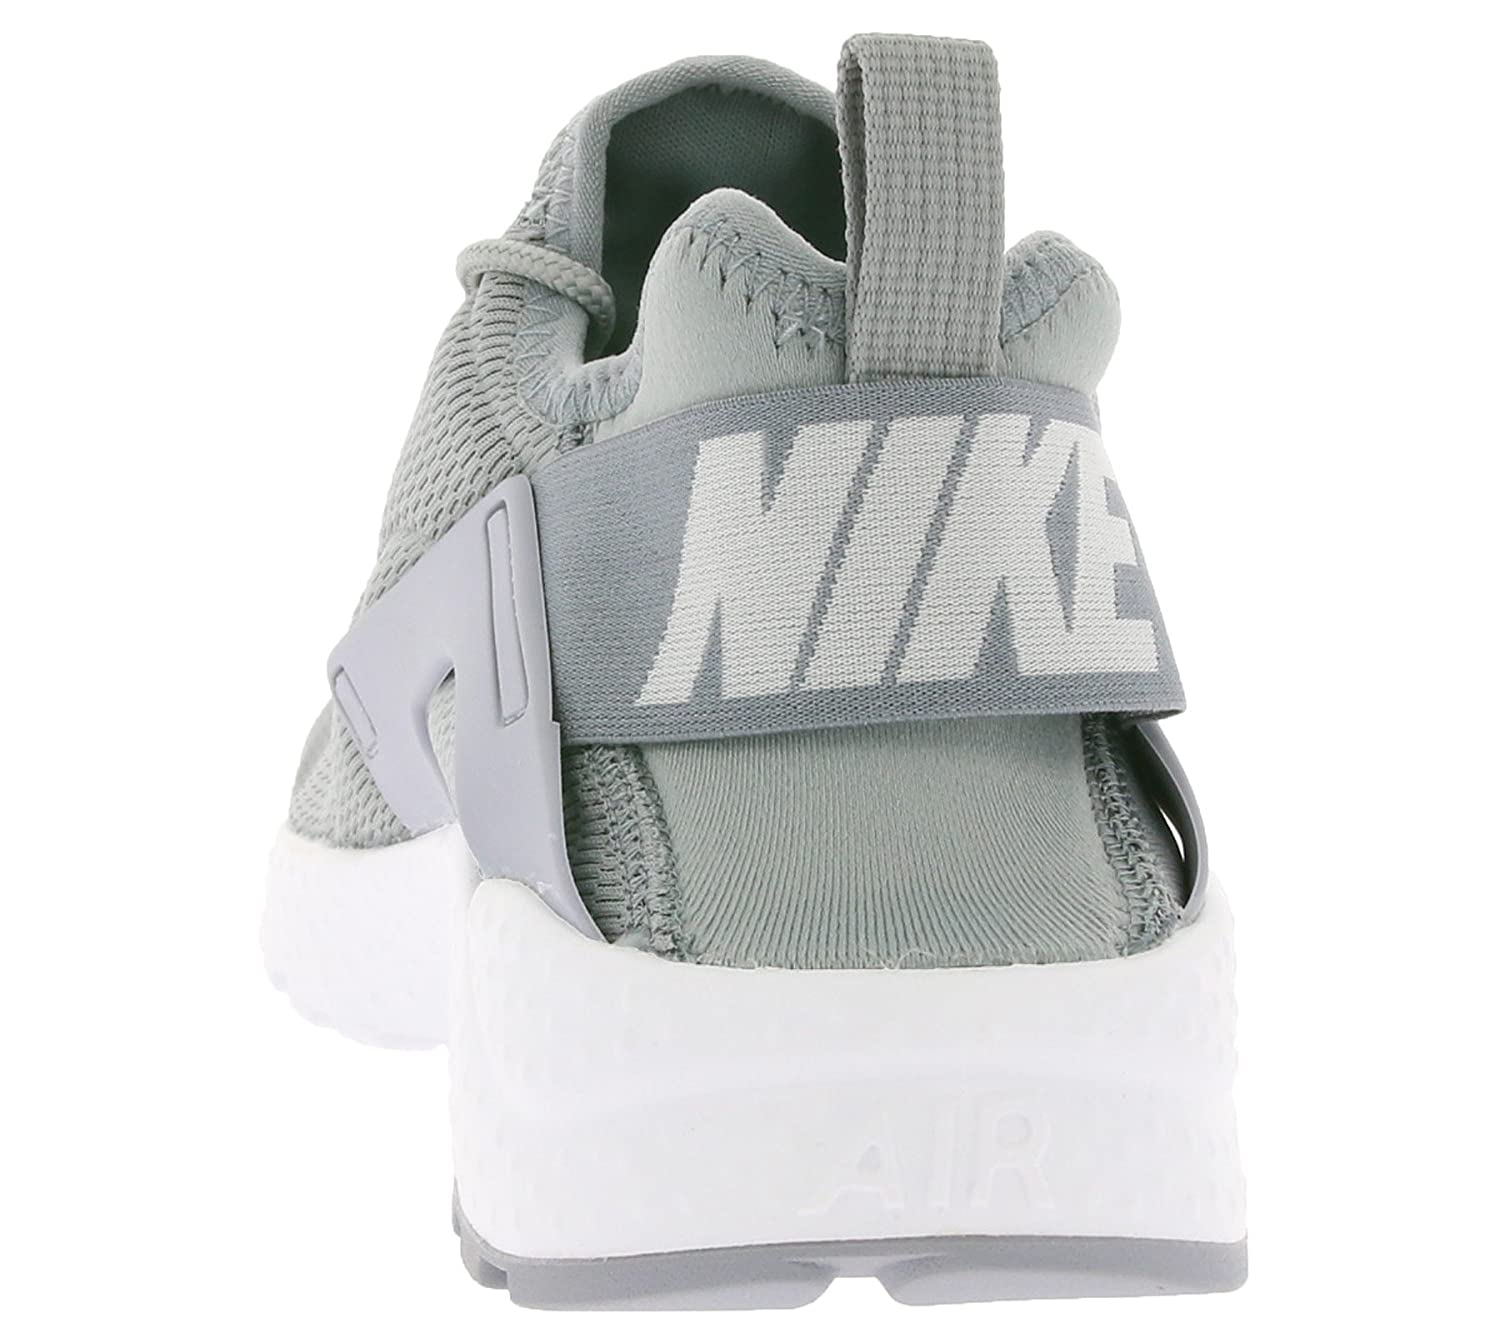 c90783ed1415 855fe 2b9d4  sweden amazon nike womens air huarache run ultra running  trainers 819151 sneakers shoes us 6.5 stealth